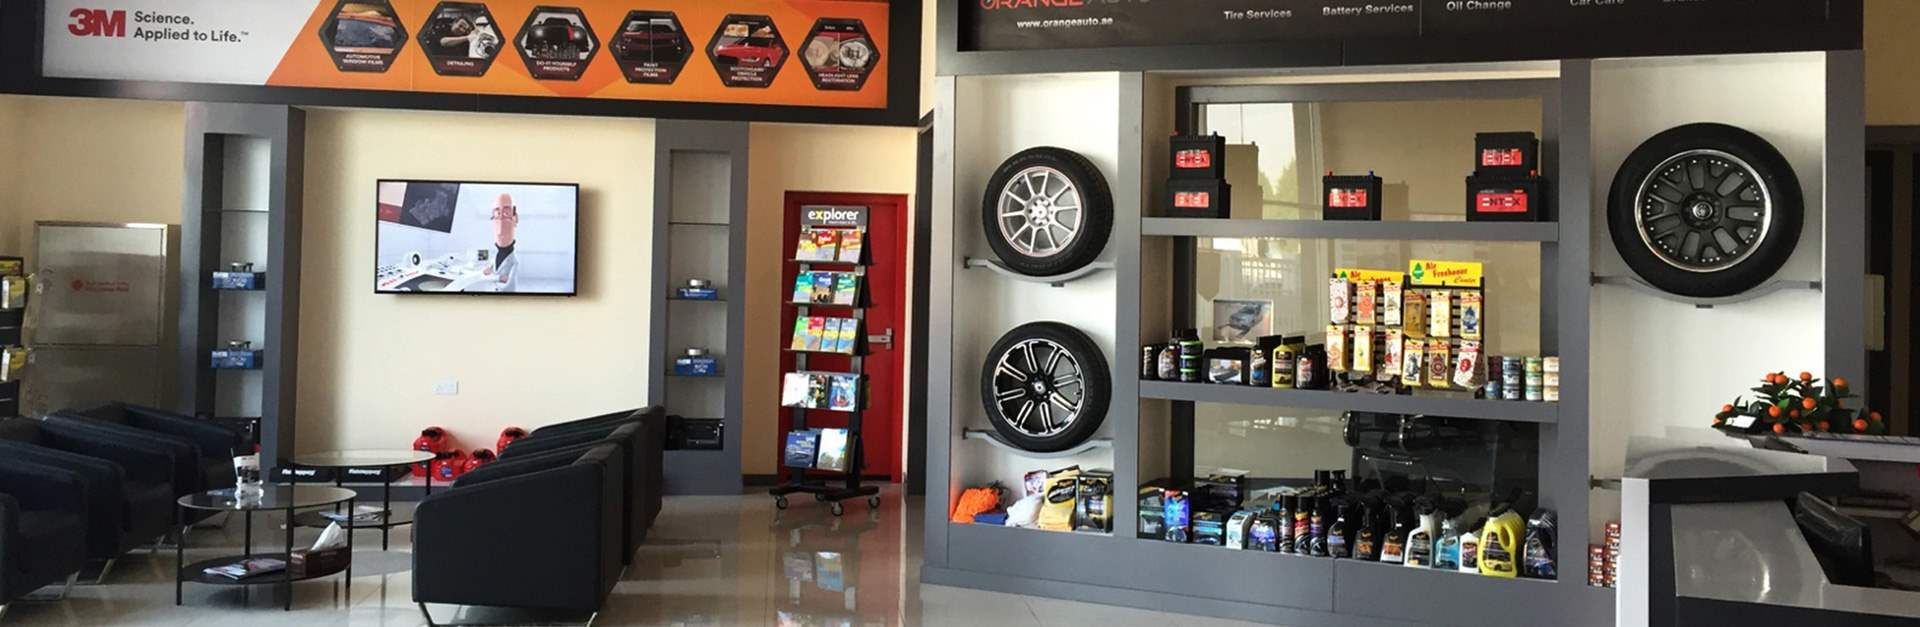 Edurar exterior and interior services with optional body wax - Auto interior restoration products ...